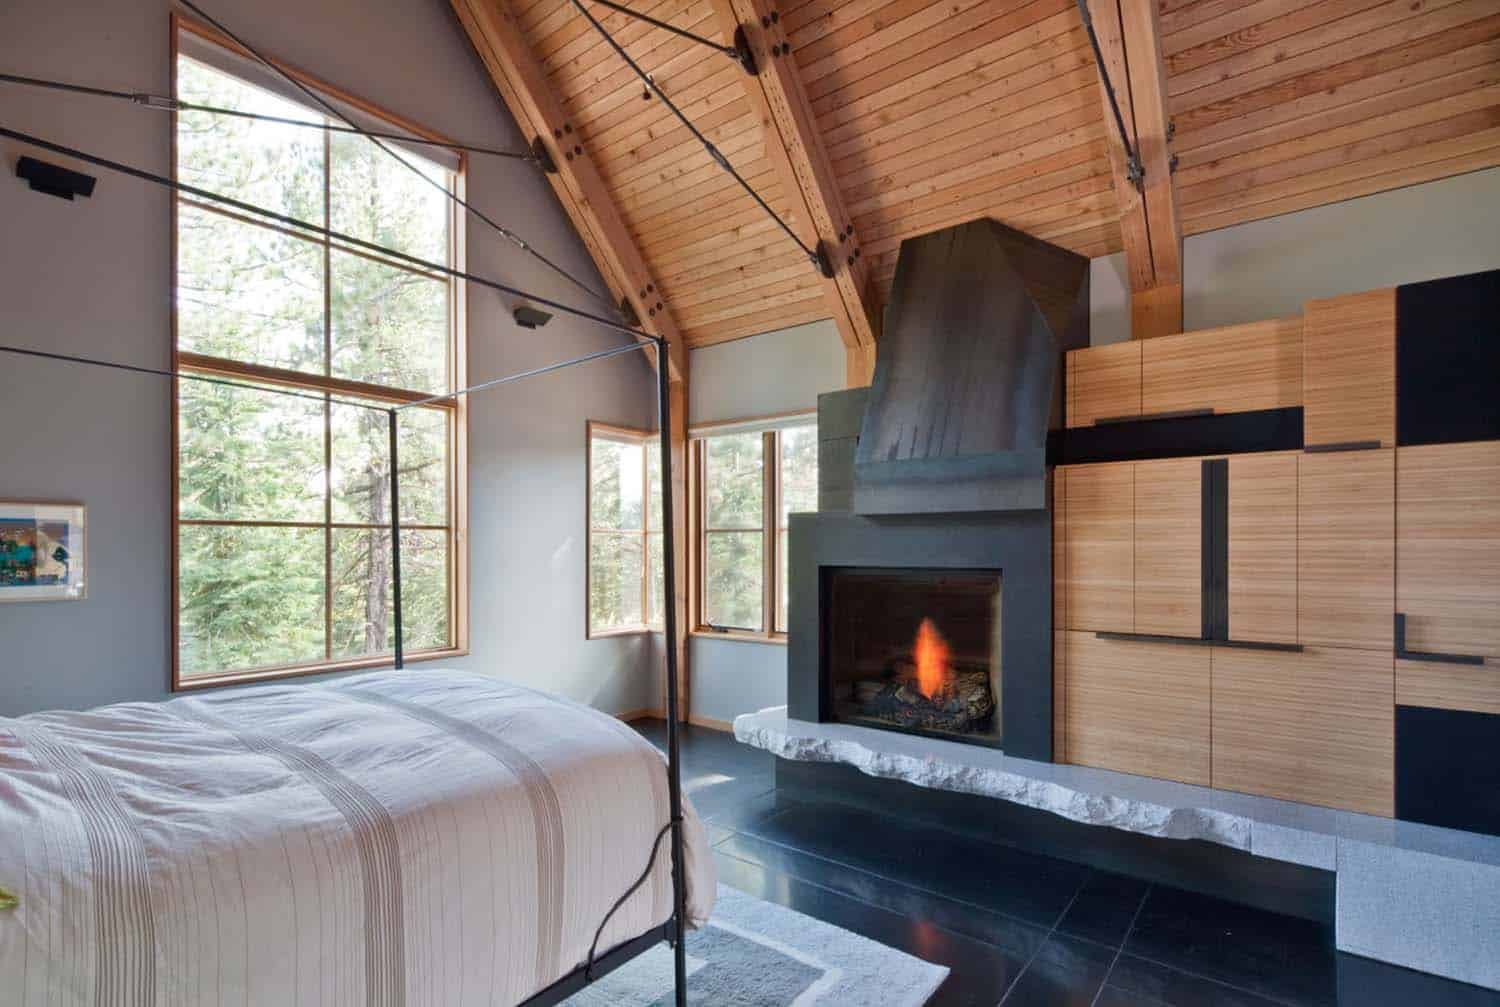 Rustic-Modern-Home-WA Design-12-1 Kindesign